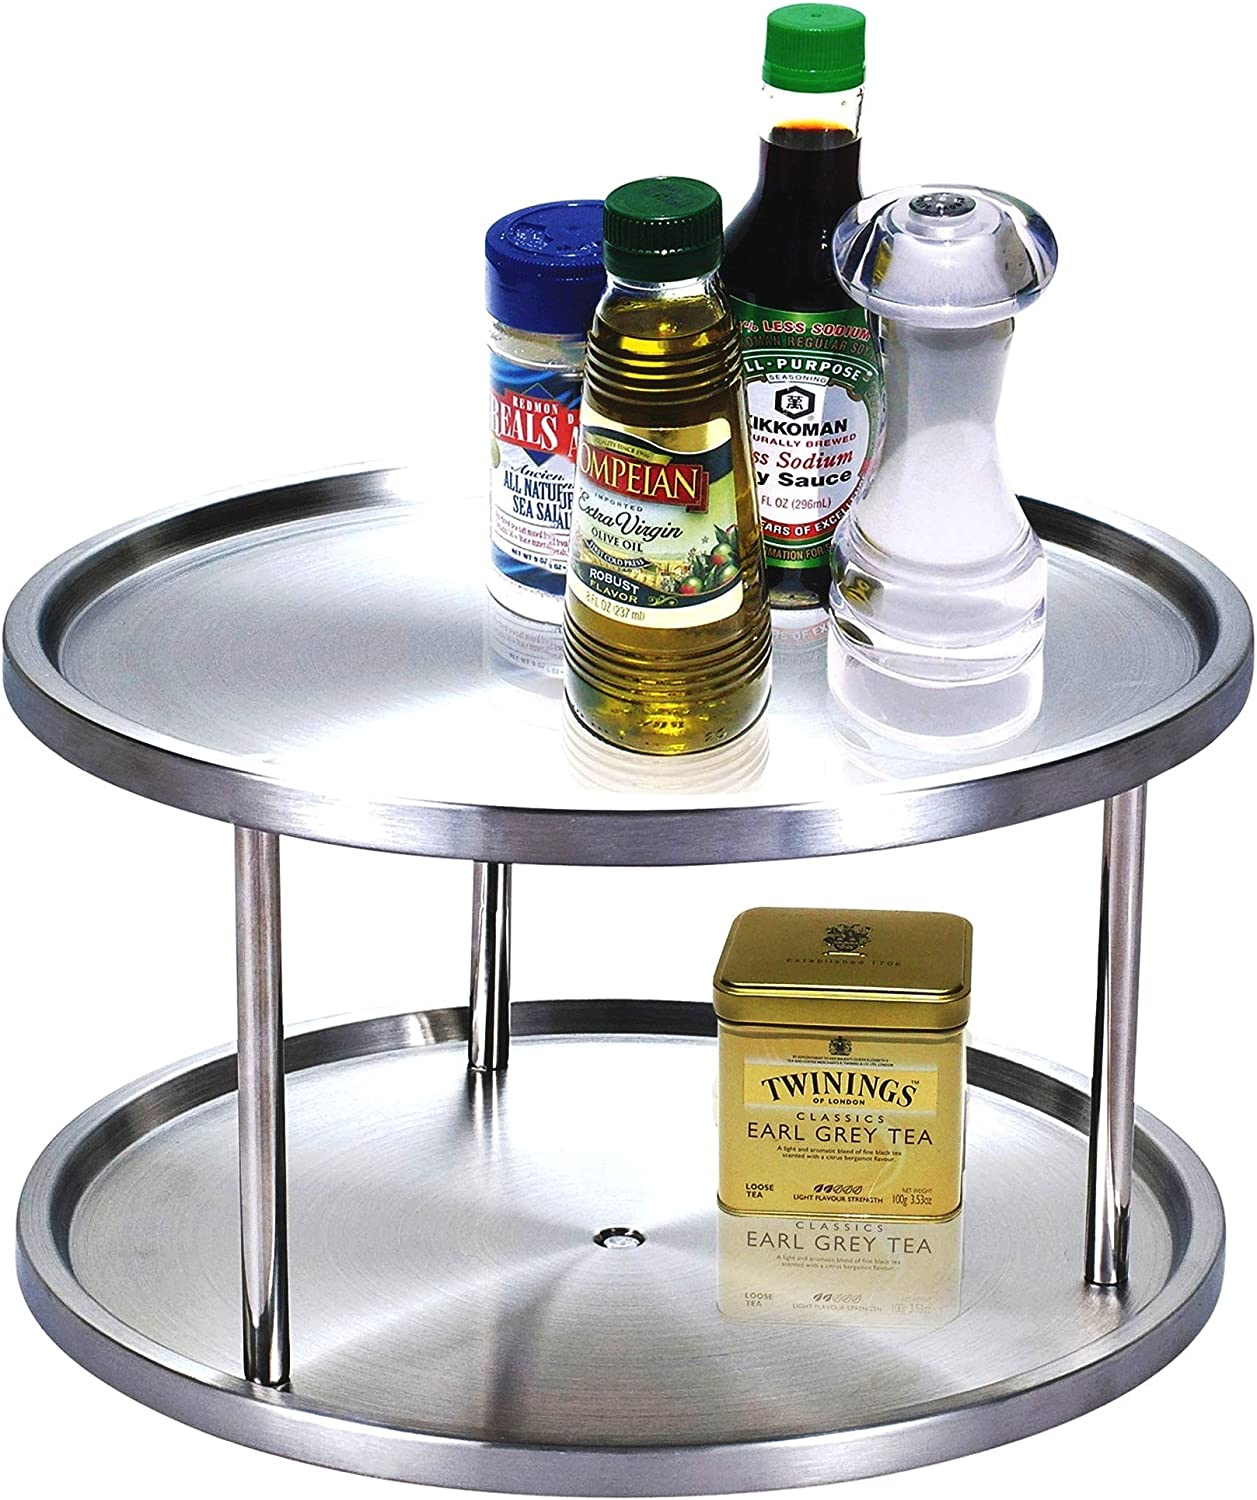 Stainless Steel Canned Foods Pans Refrigerator or on Counters RSVP International Endurance TURN-1 Turntable Lazy Susan 10.5 Dinnerware 10.5 Inch Handy in Cabinet Pots Organize Spices